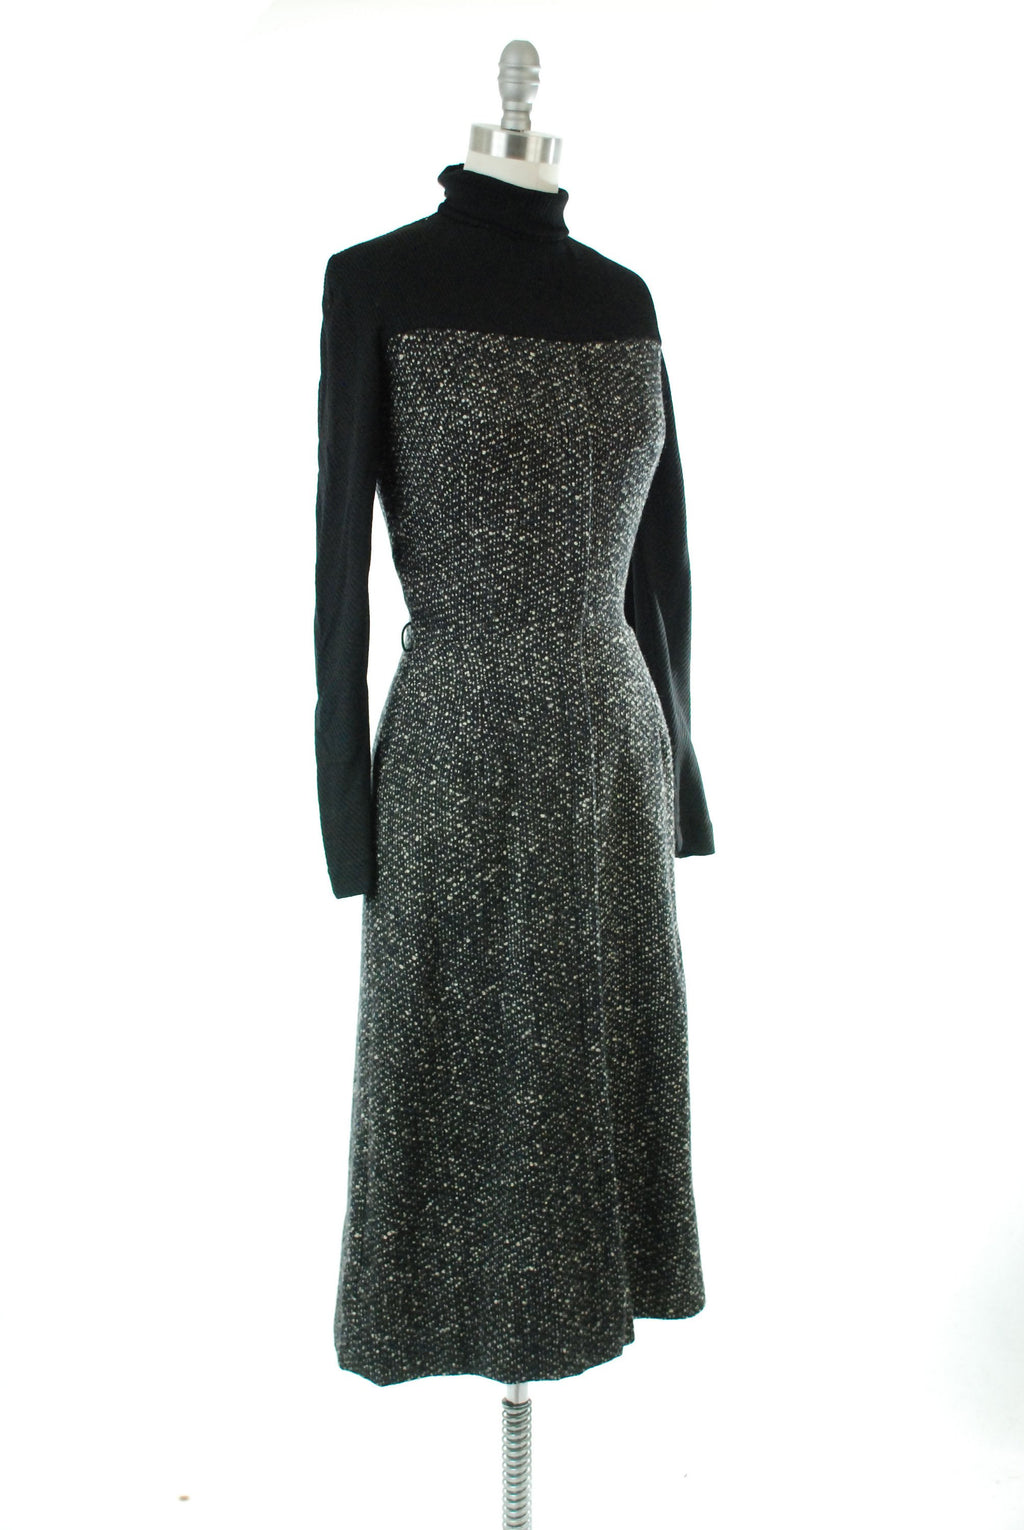 Vintage 1960s Dress - Early 60s Tweed and Knit Winter Dress in Grey, Black and White